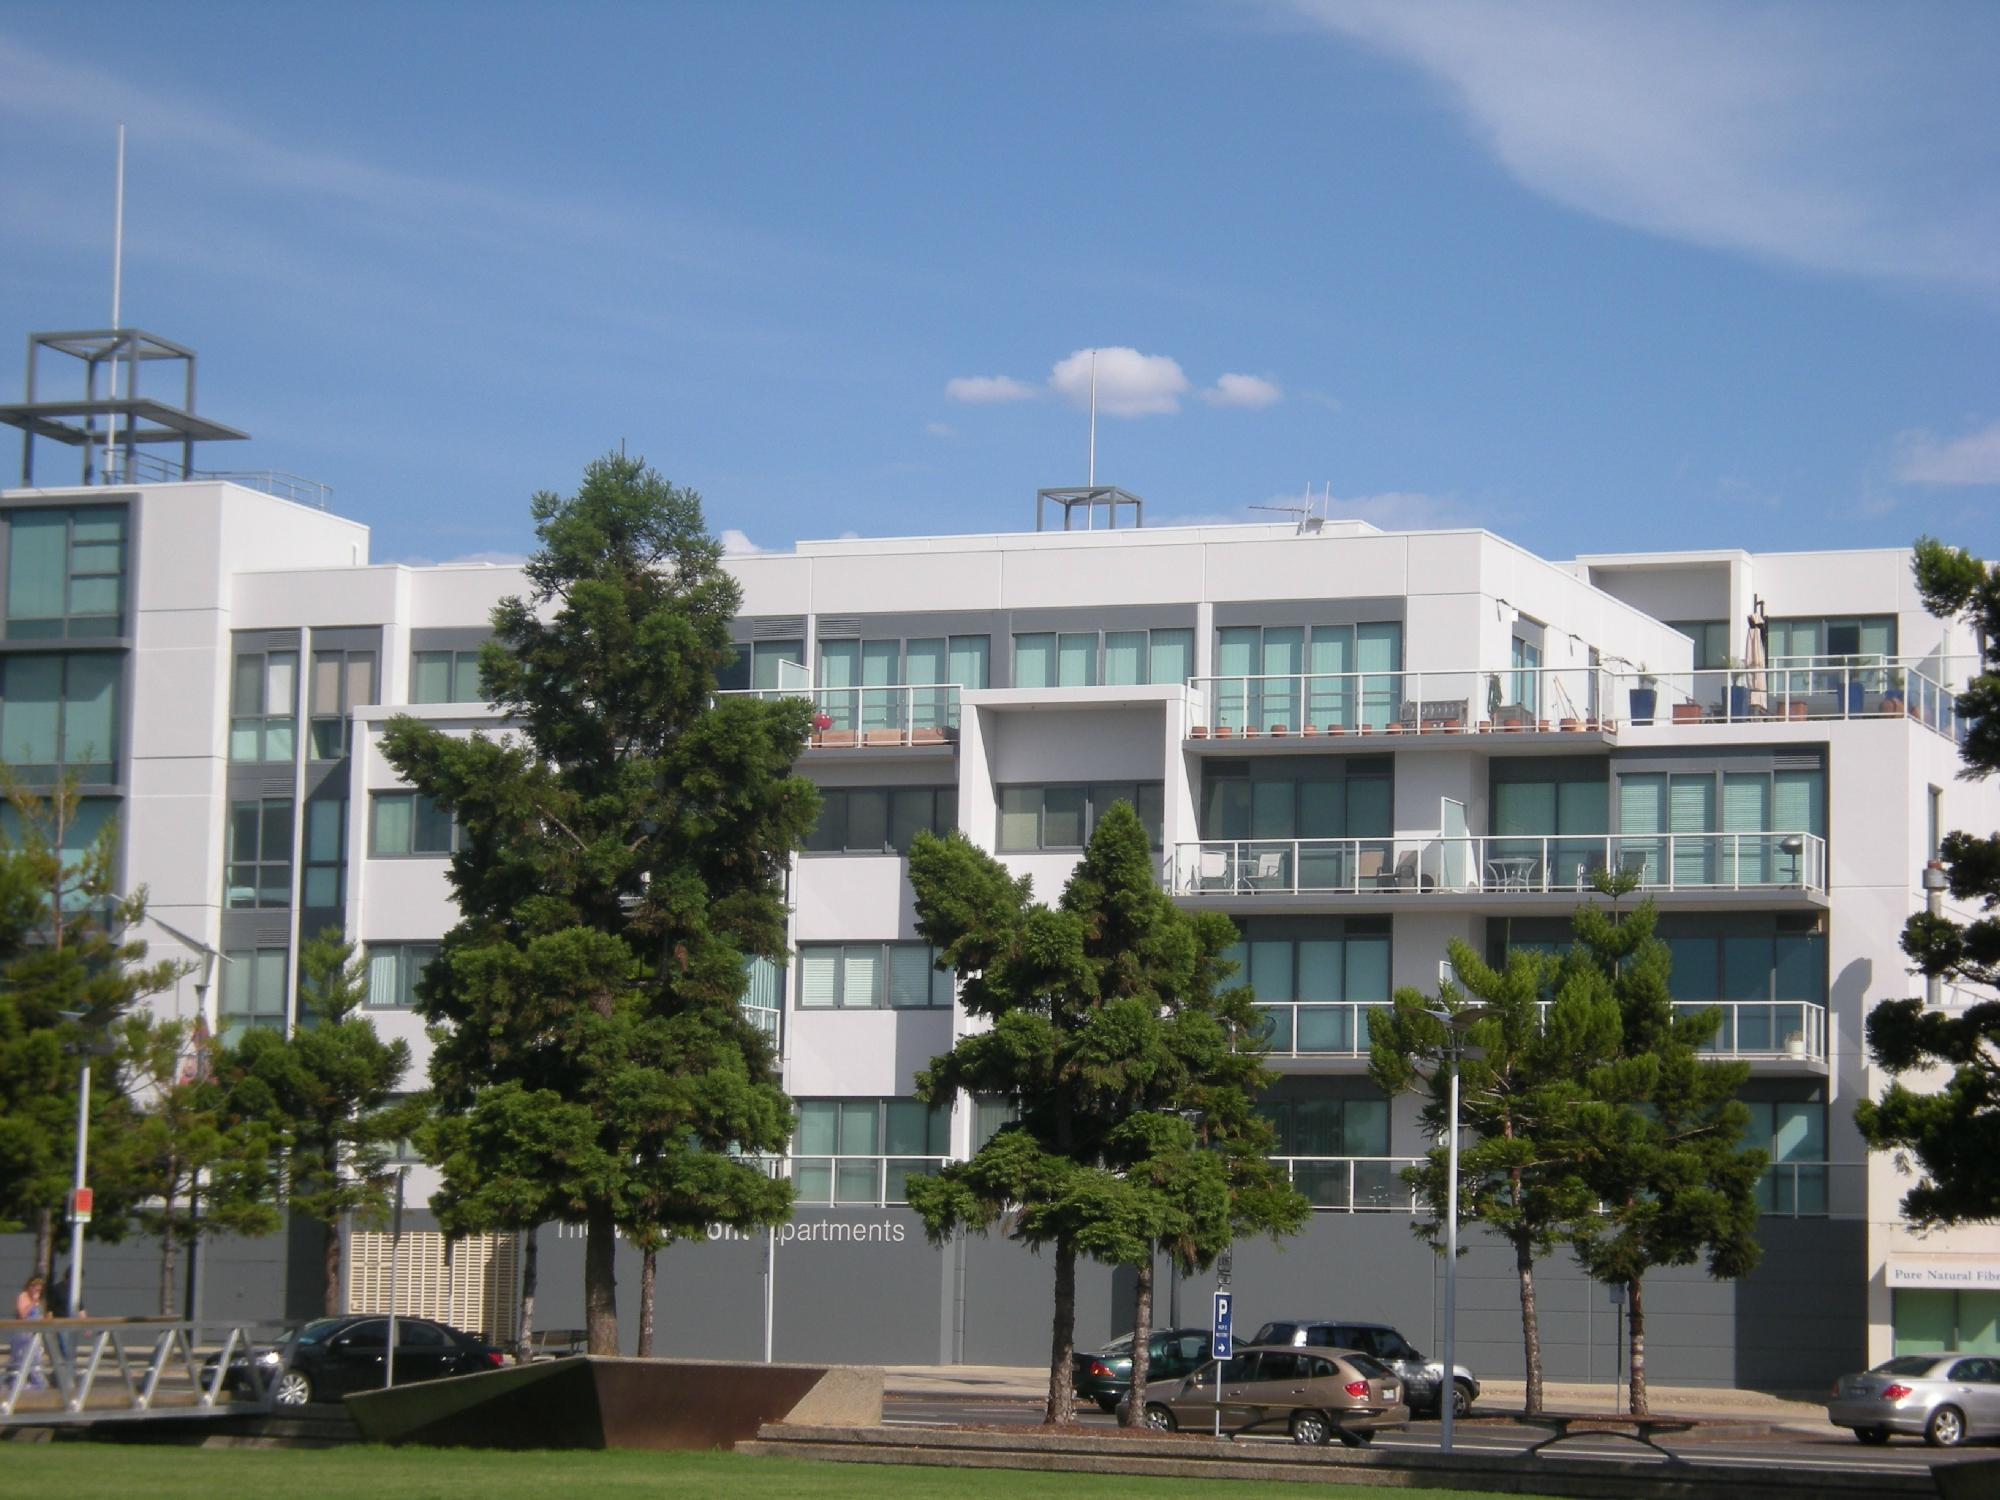 The Waterfront Apartments